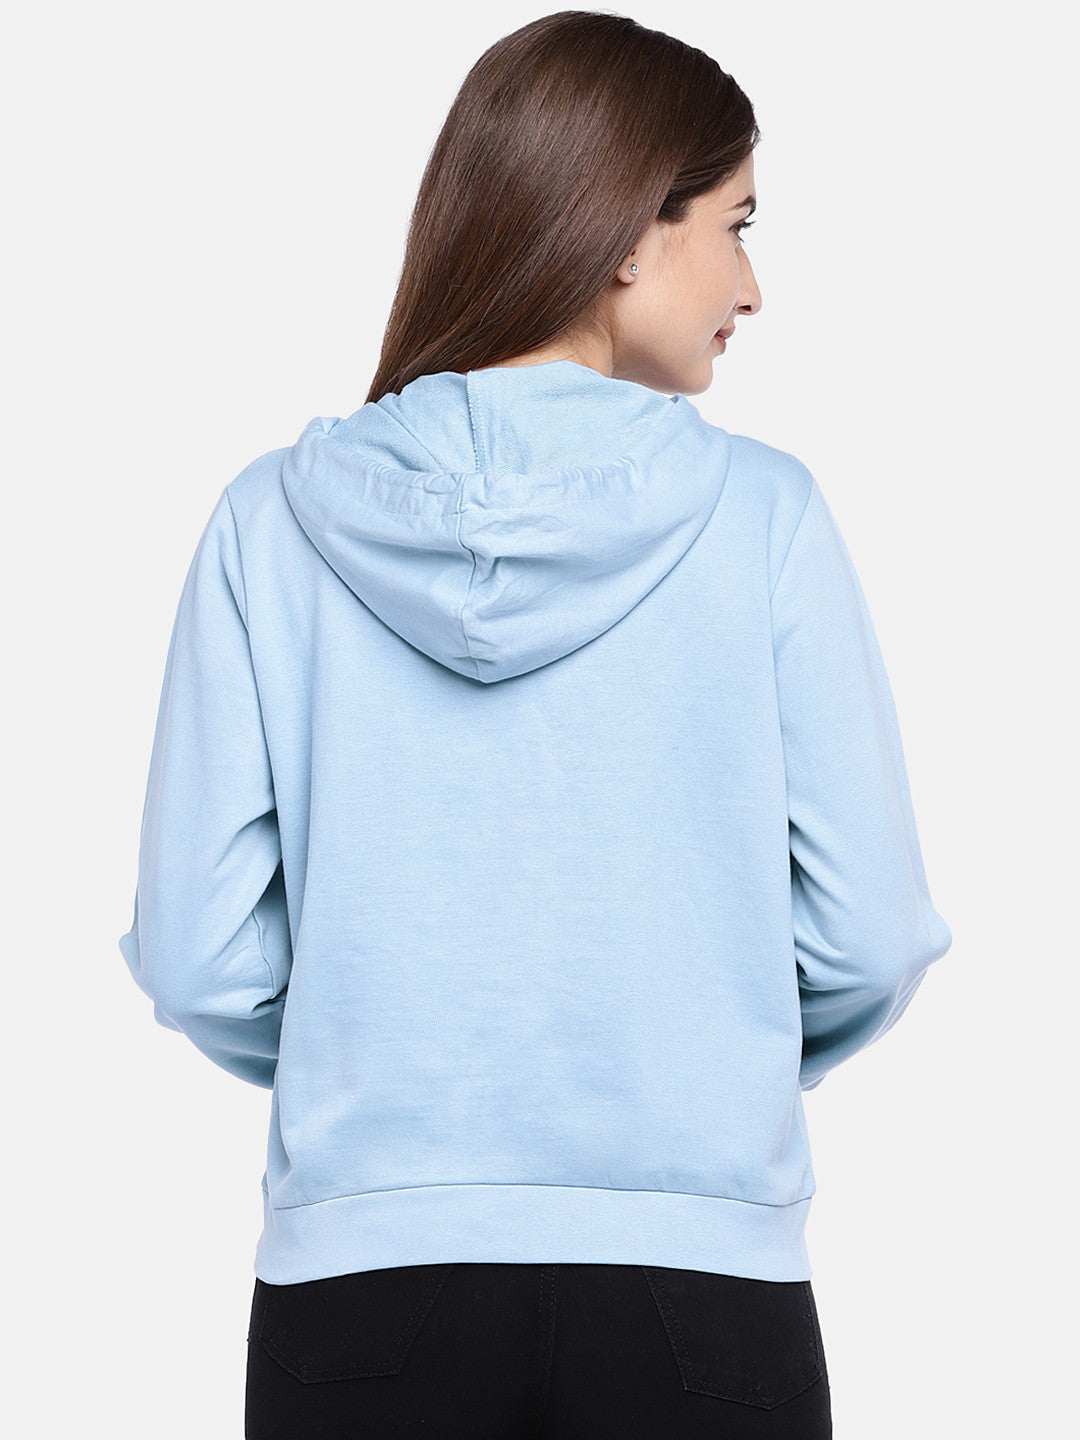 Blue Solid Hooded Sweatshirt-3